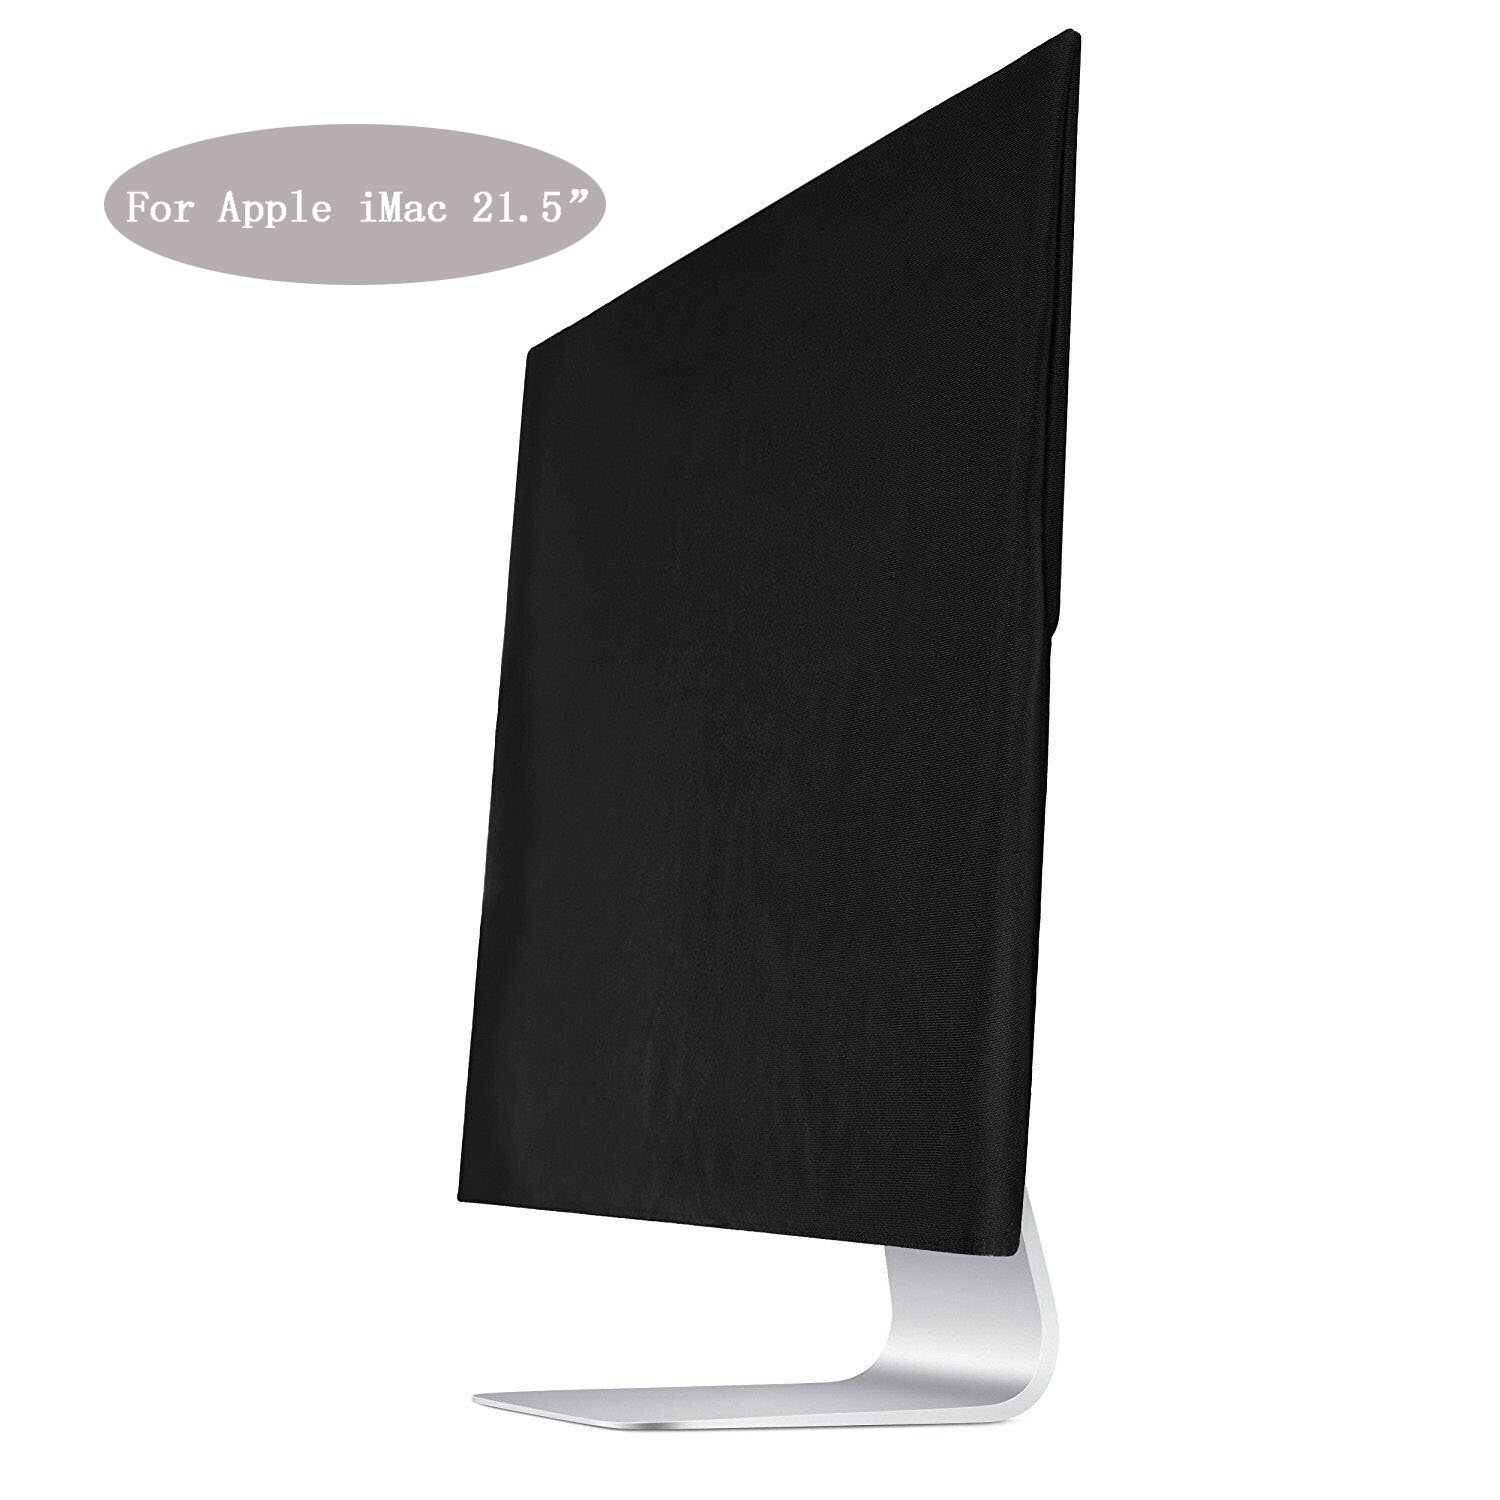 ASYOU Black Dust Screen Cover Sleeve for Apple iMac 21.5 Dust Cover,Display Protector (A1224, A1311, A1418)